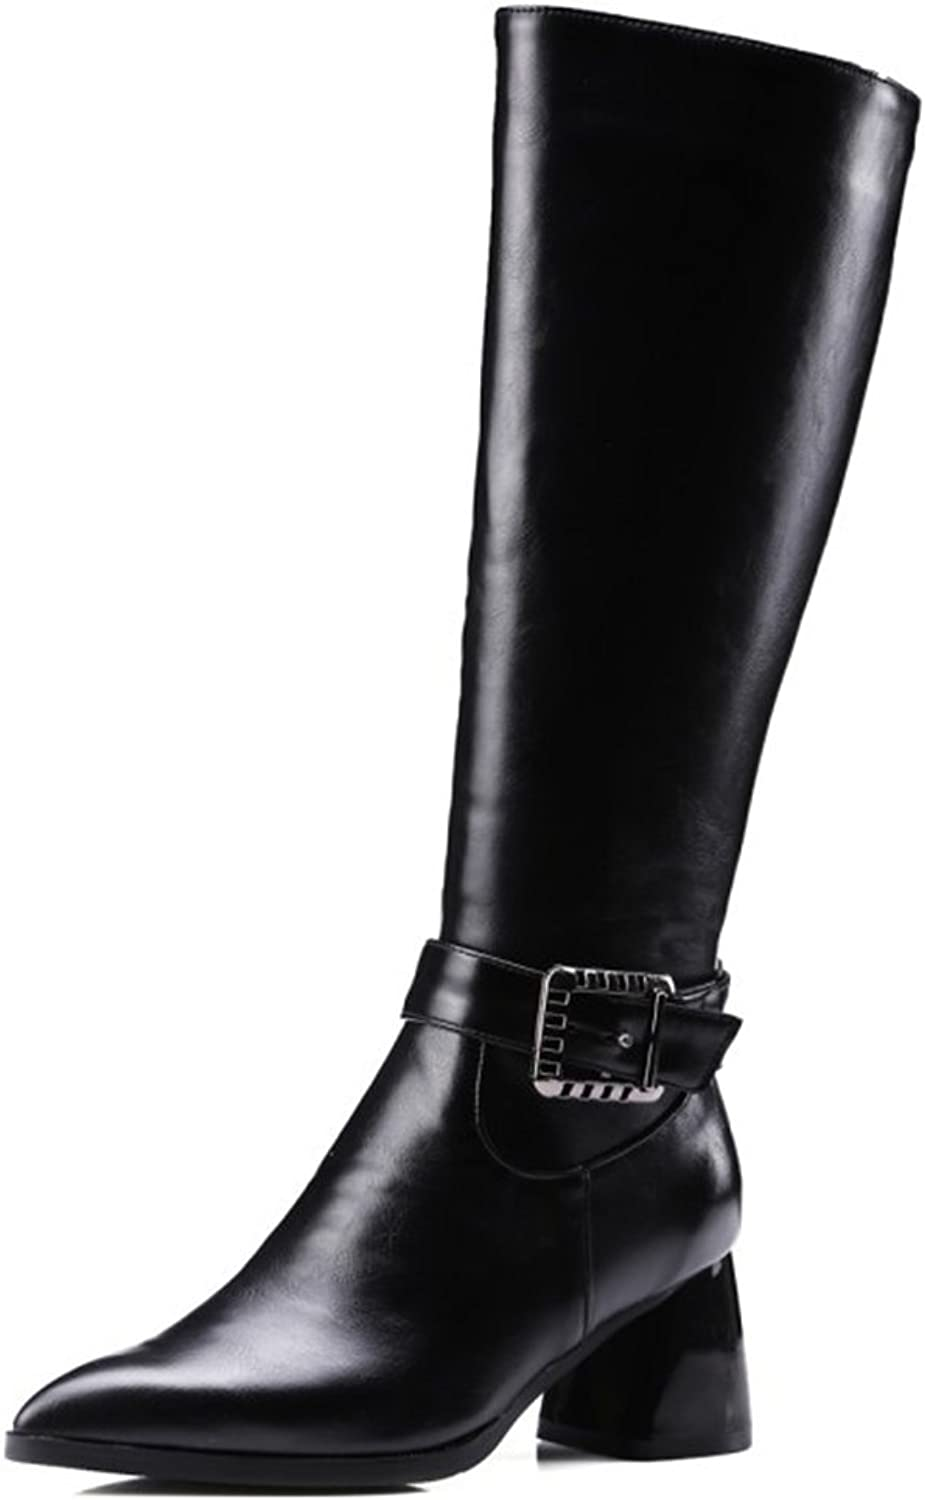 IDIFU Women's Classic Buckled Pointed Toe Knee High Boots Mid Chunky Heels Combat Booties with Zipper